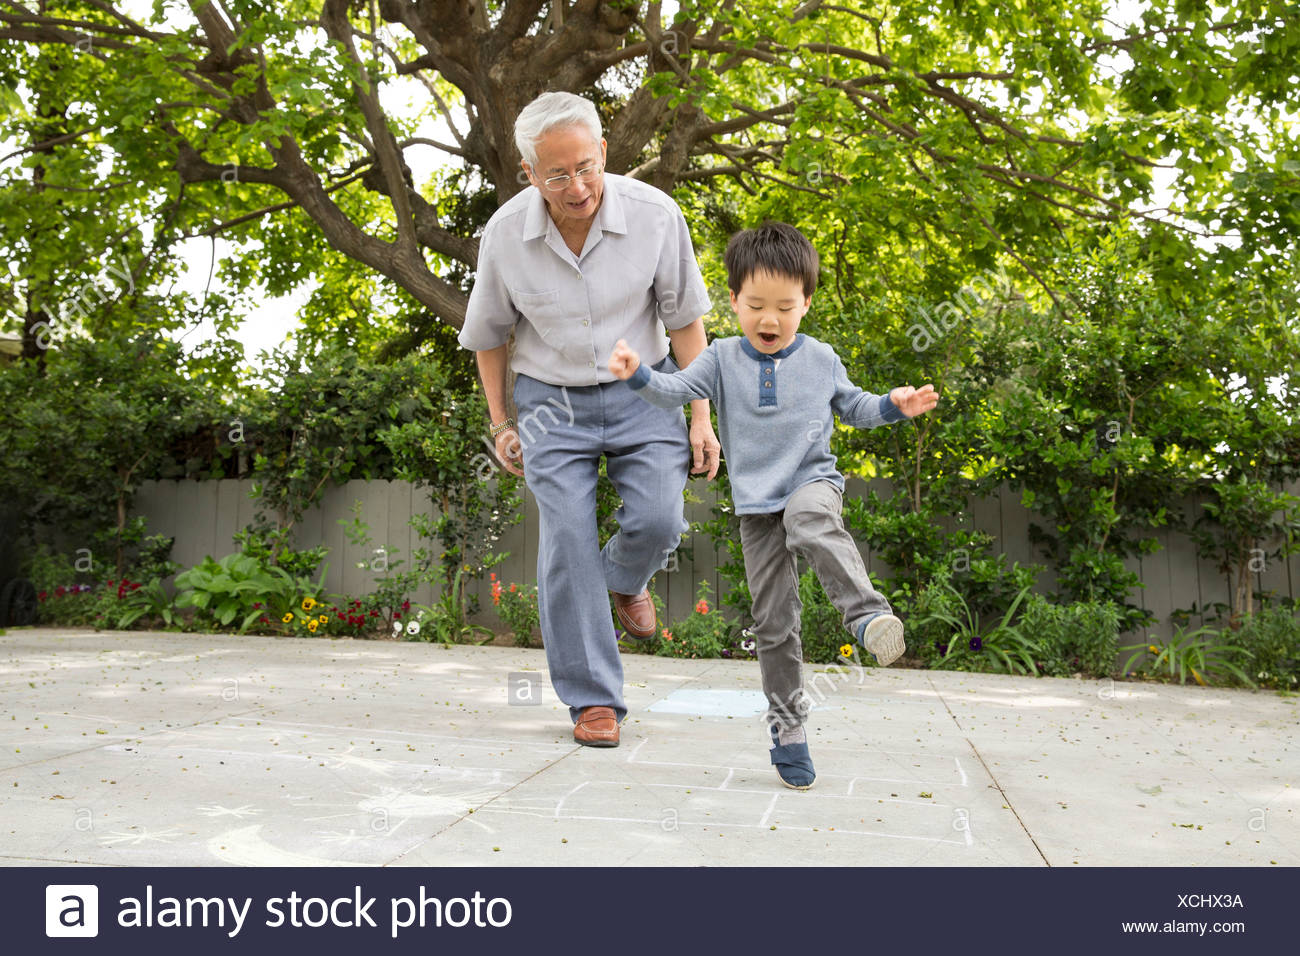 Grandfather playing hopscotch with grandson - Stock Image